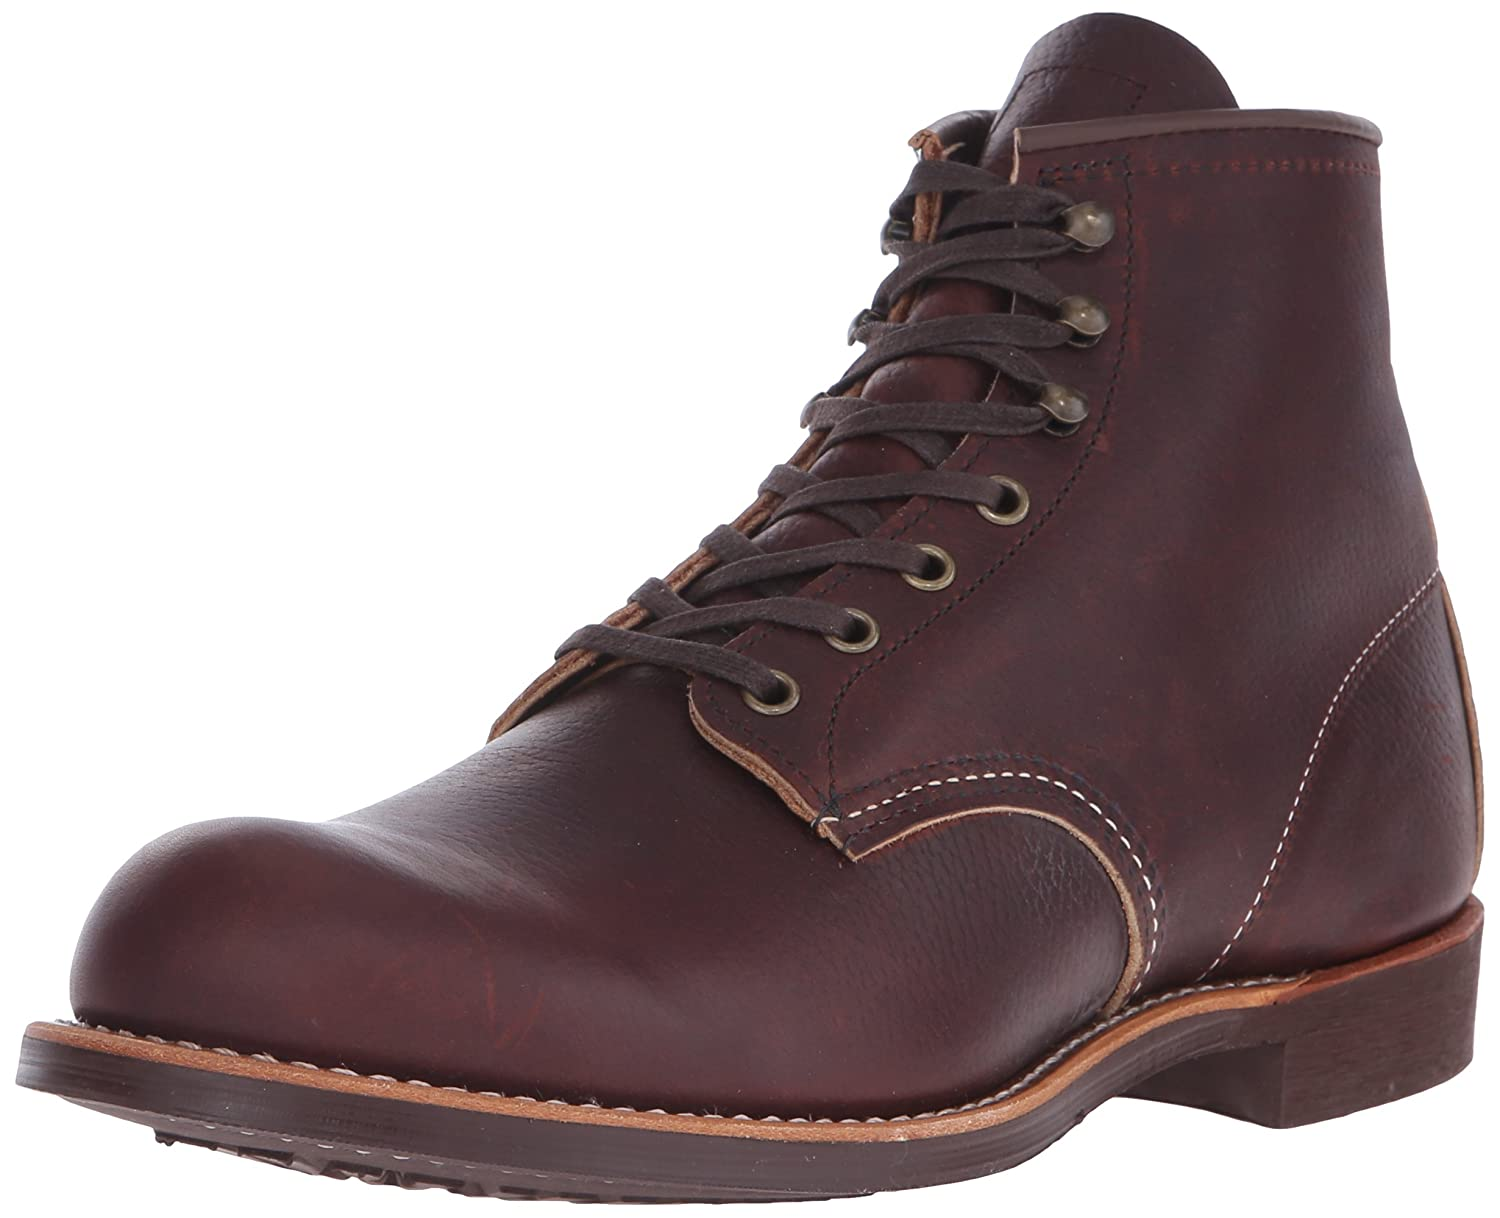 Red Wing Heritage メンズ Red Wing Heritage B018TL4DRM 11 D(M) US|Briar Oil Slick Leather Briar Oil Slick Leather 11 D(M) US